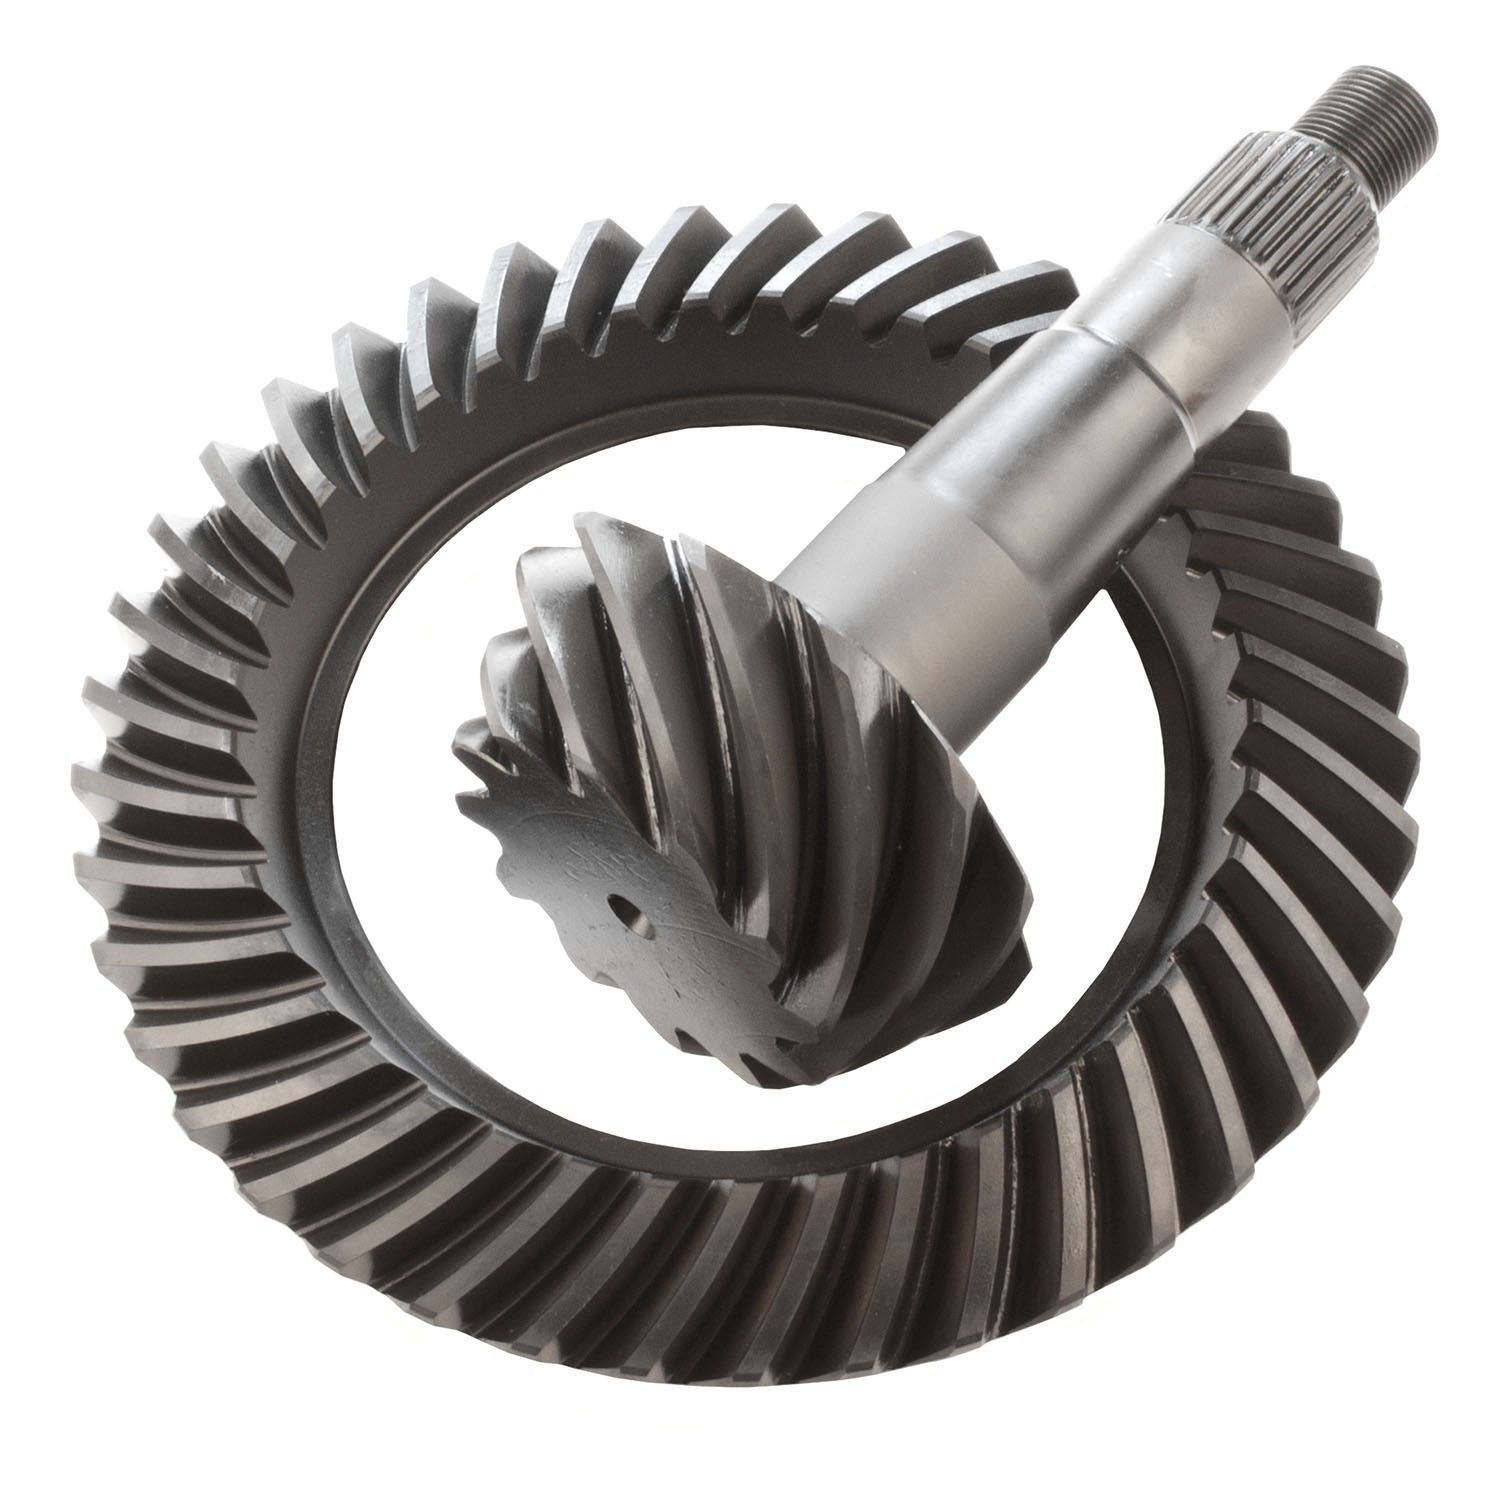 Richmond Gear 49-0094-1 Ring and Pinion GM 8.875'' 3.08 Car Ring Ratio, 1 Pack